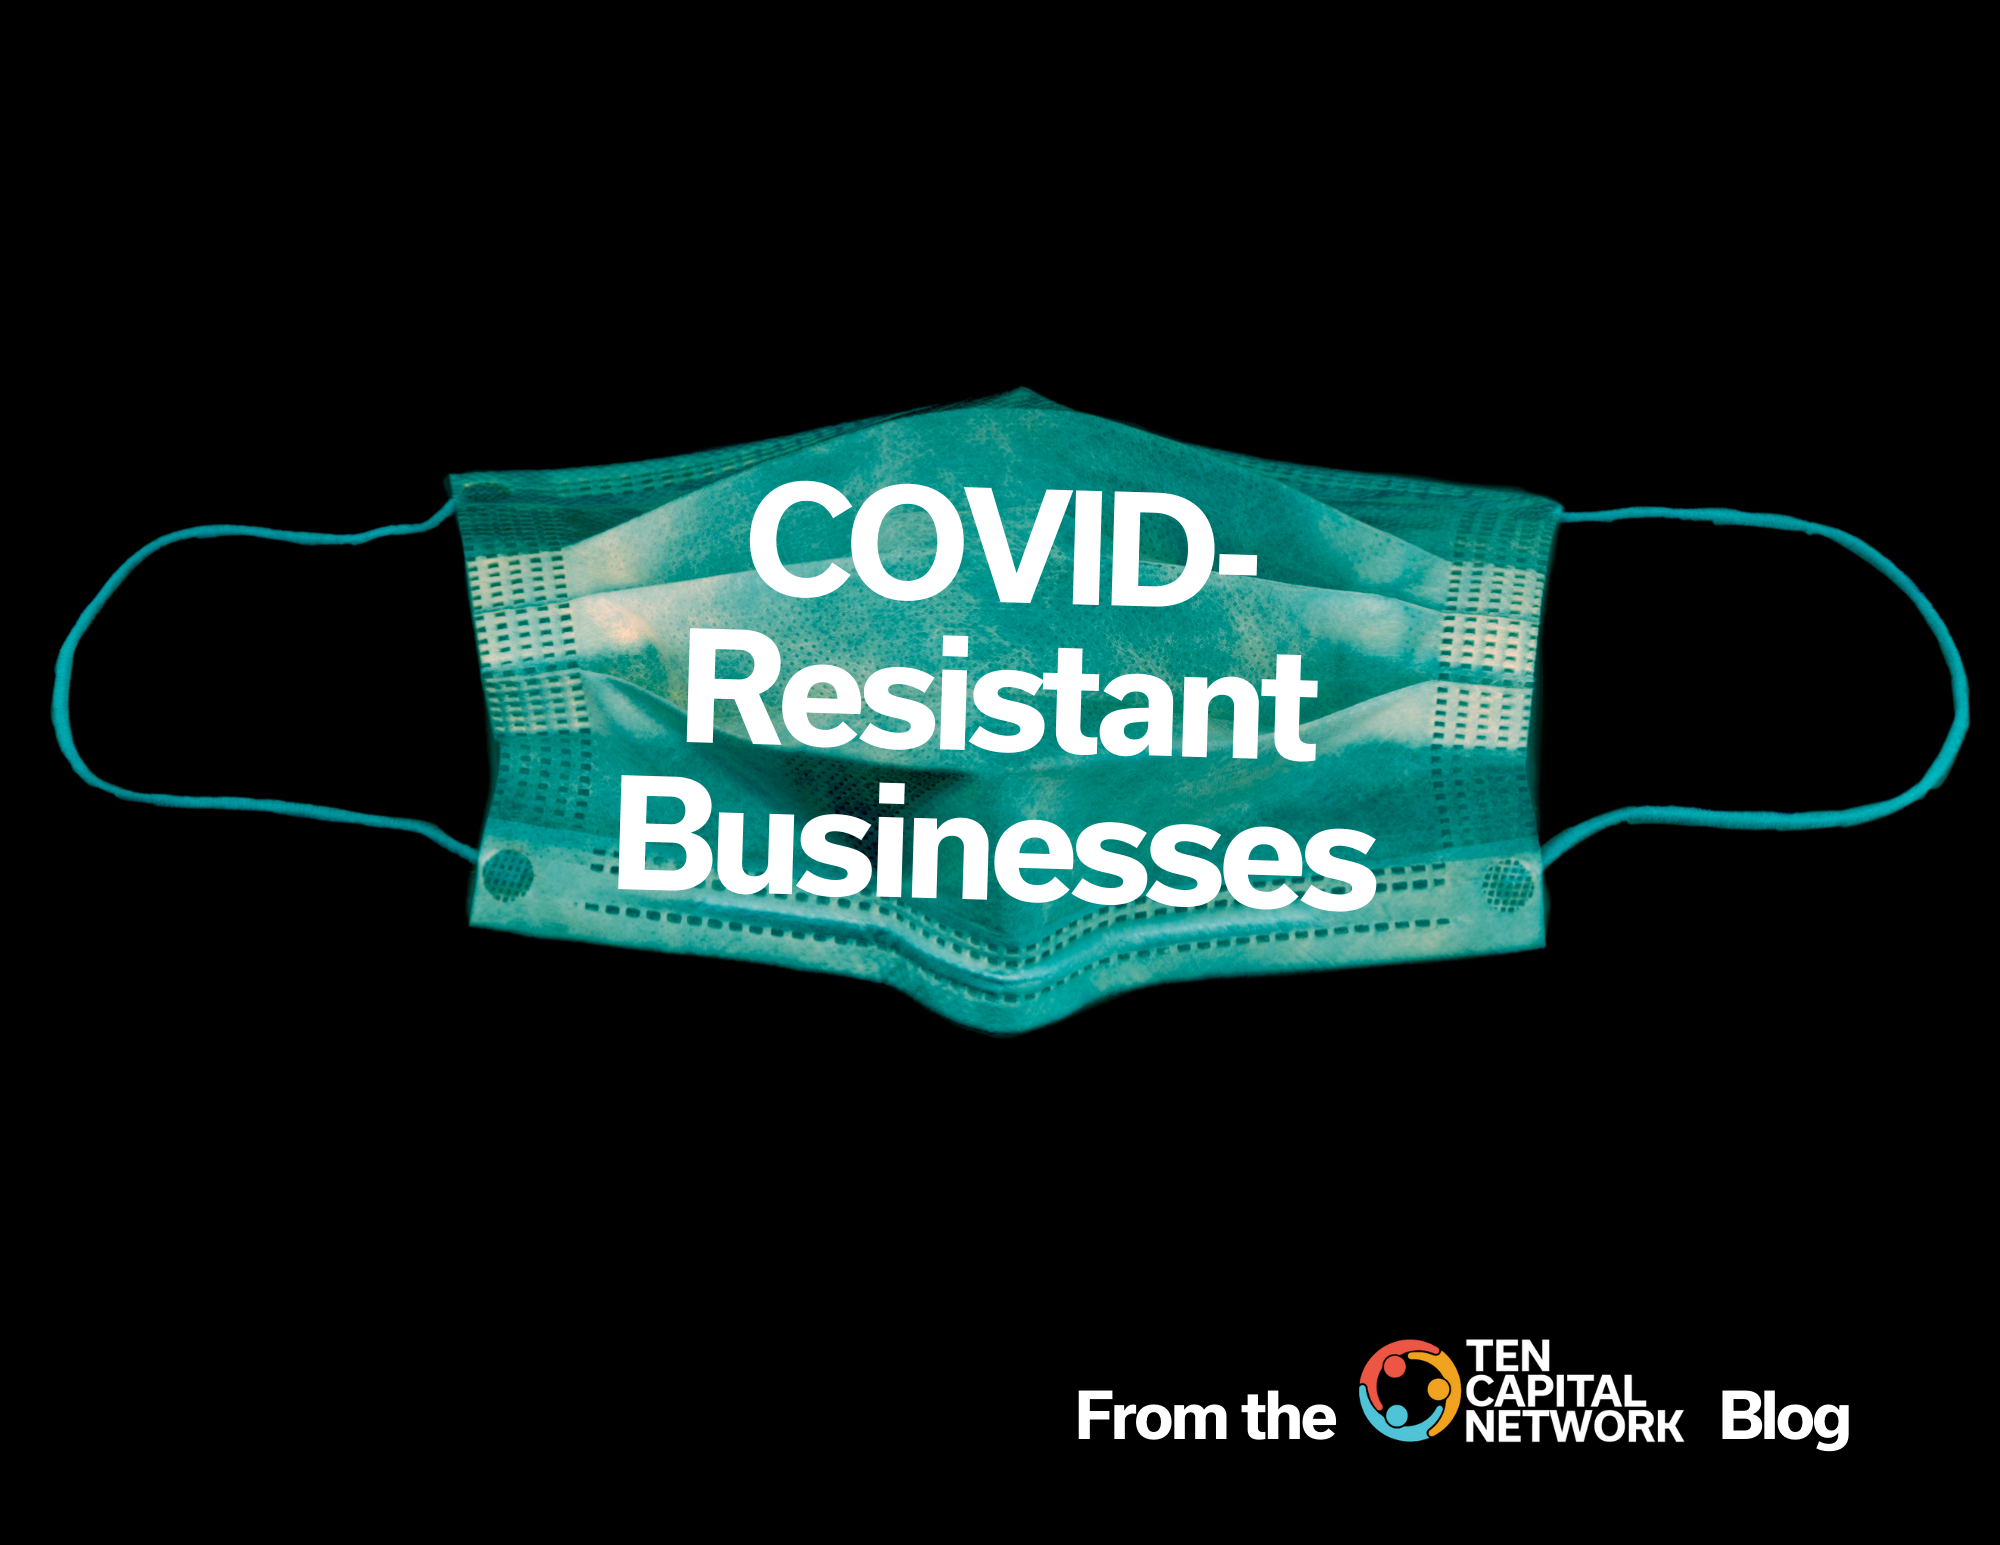 COVID-Resistant Businesses